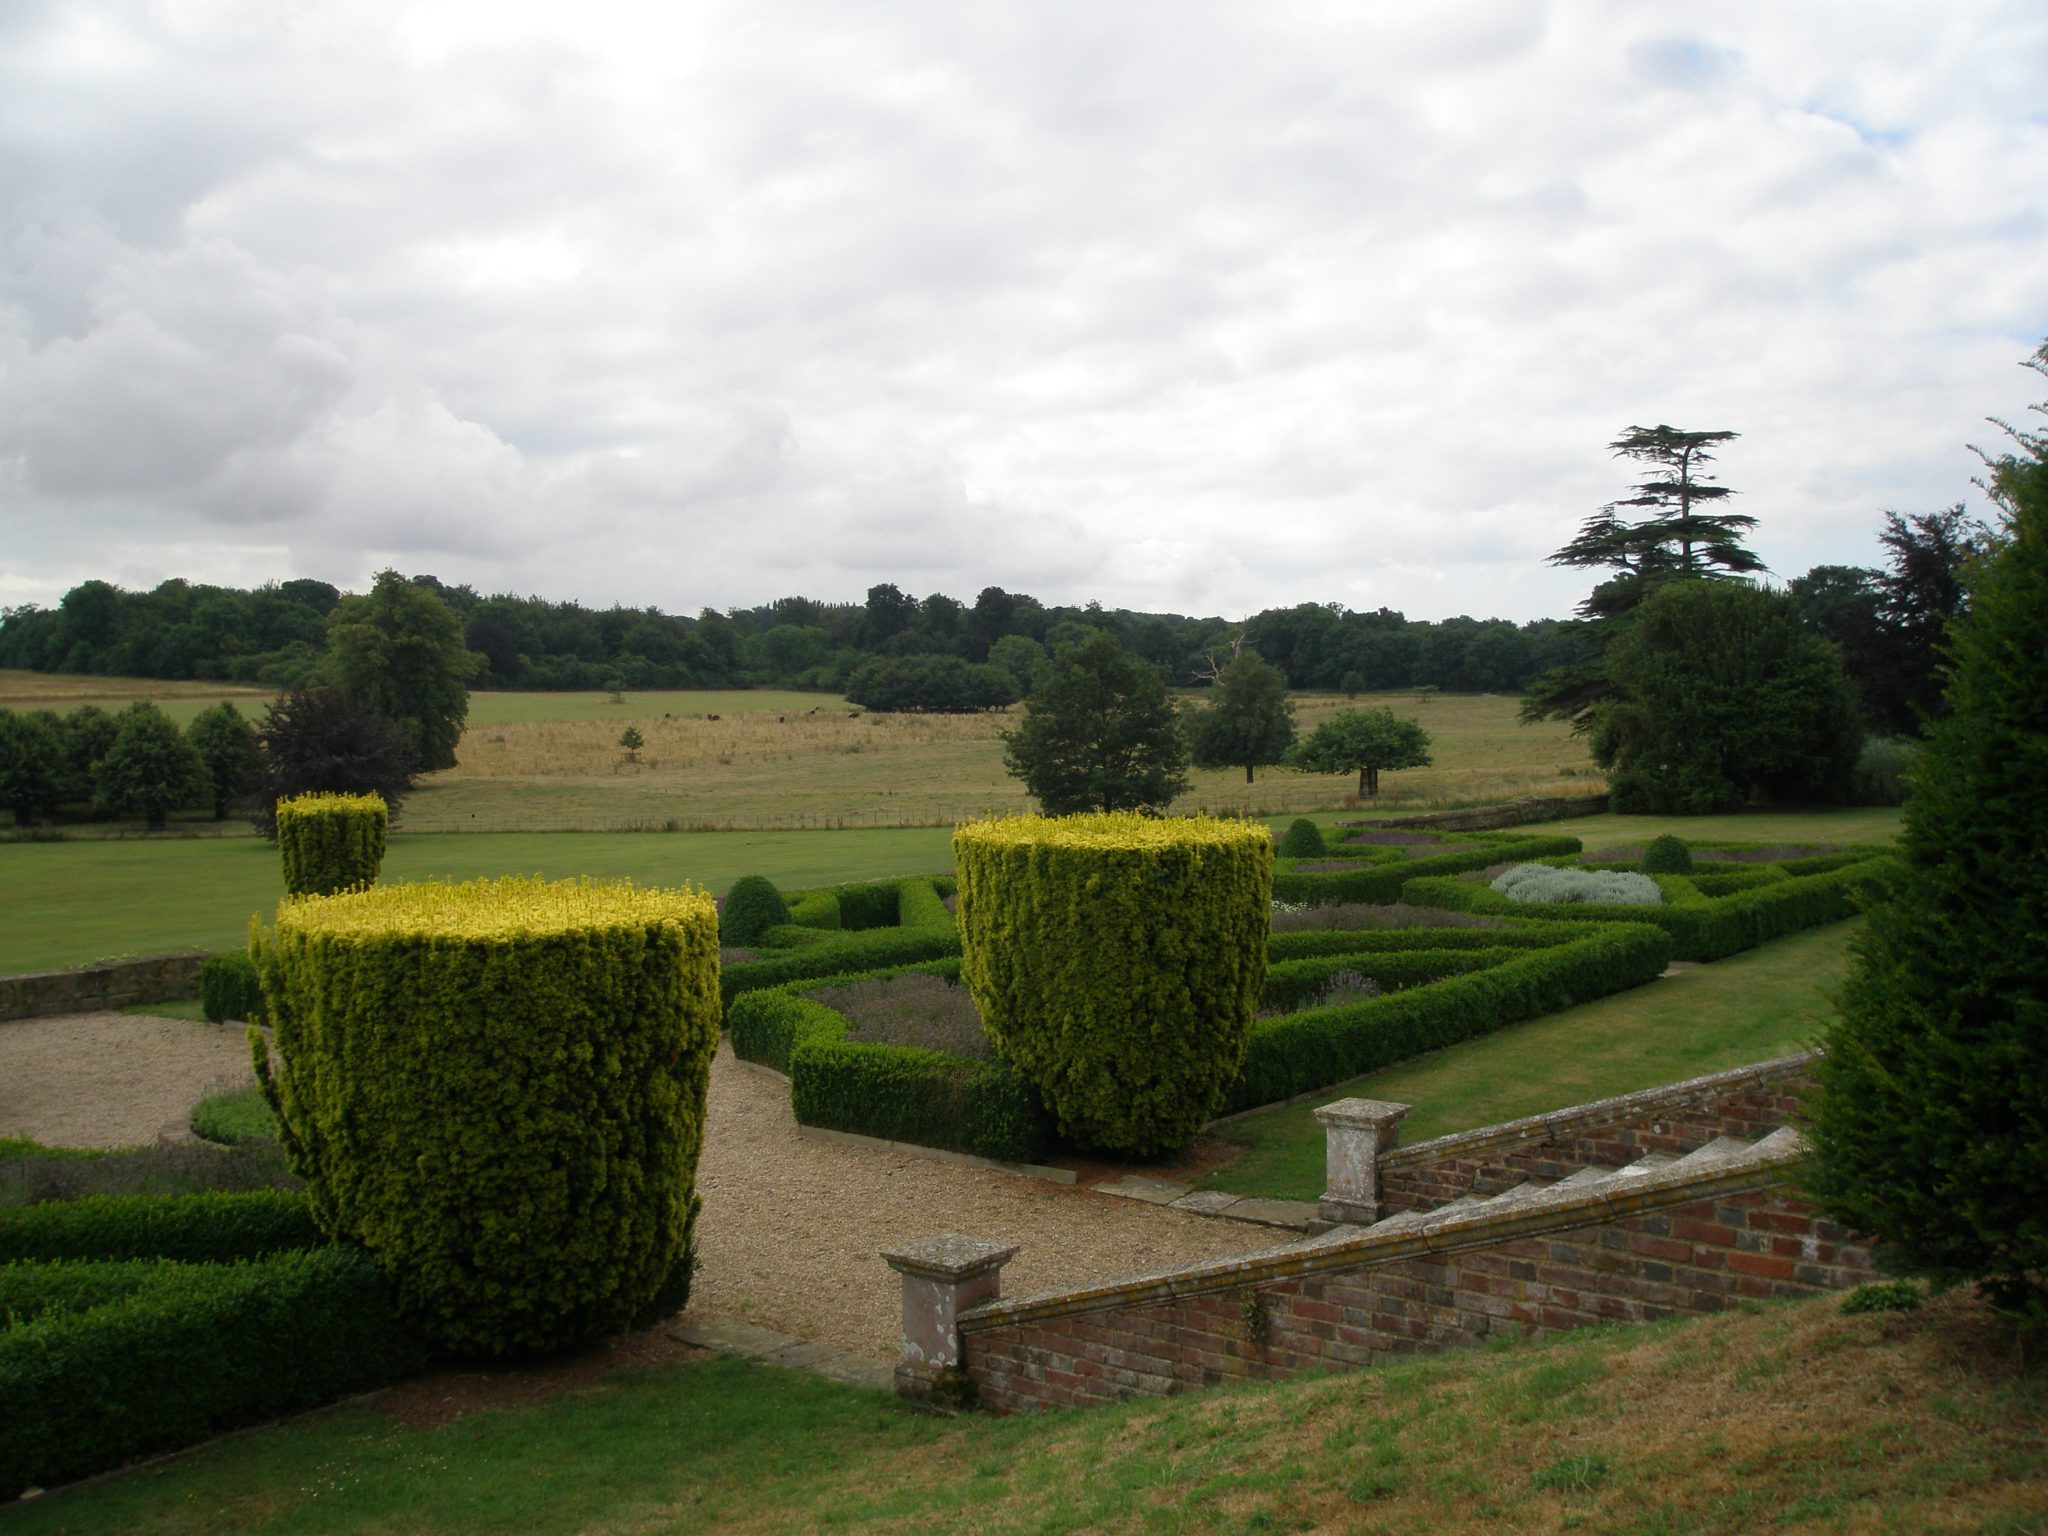 From the East Face's Upper Terrace, one has long views over the Parterre, and then farther off, of meadows filled with grazing cattle and sheep.